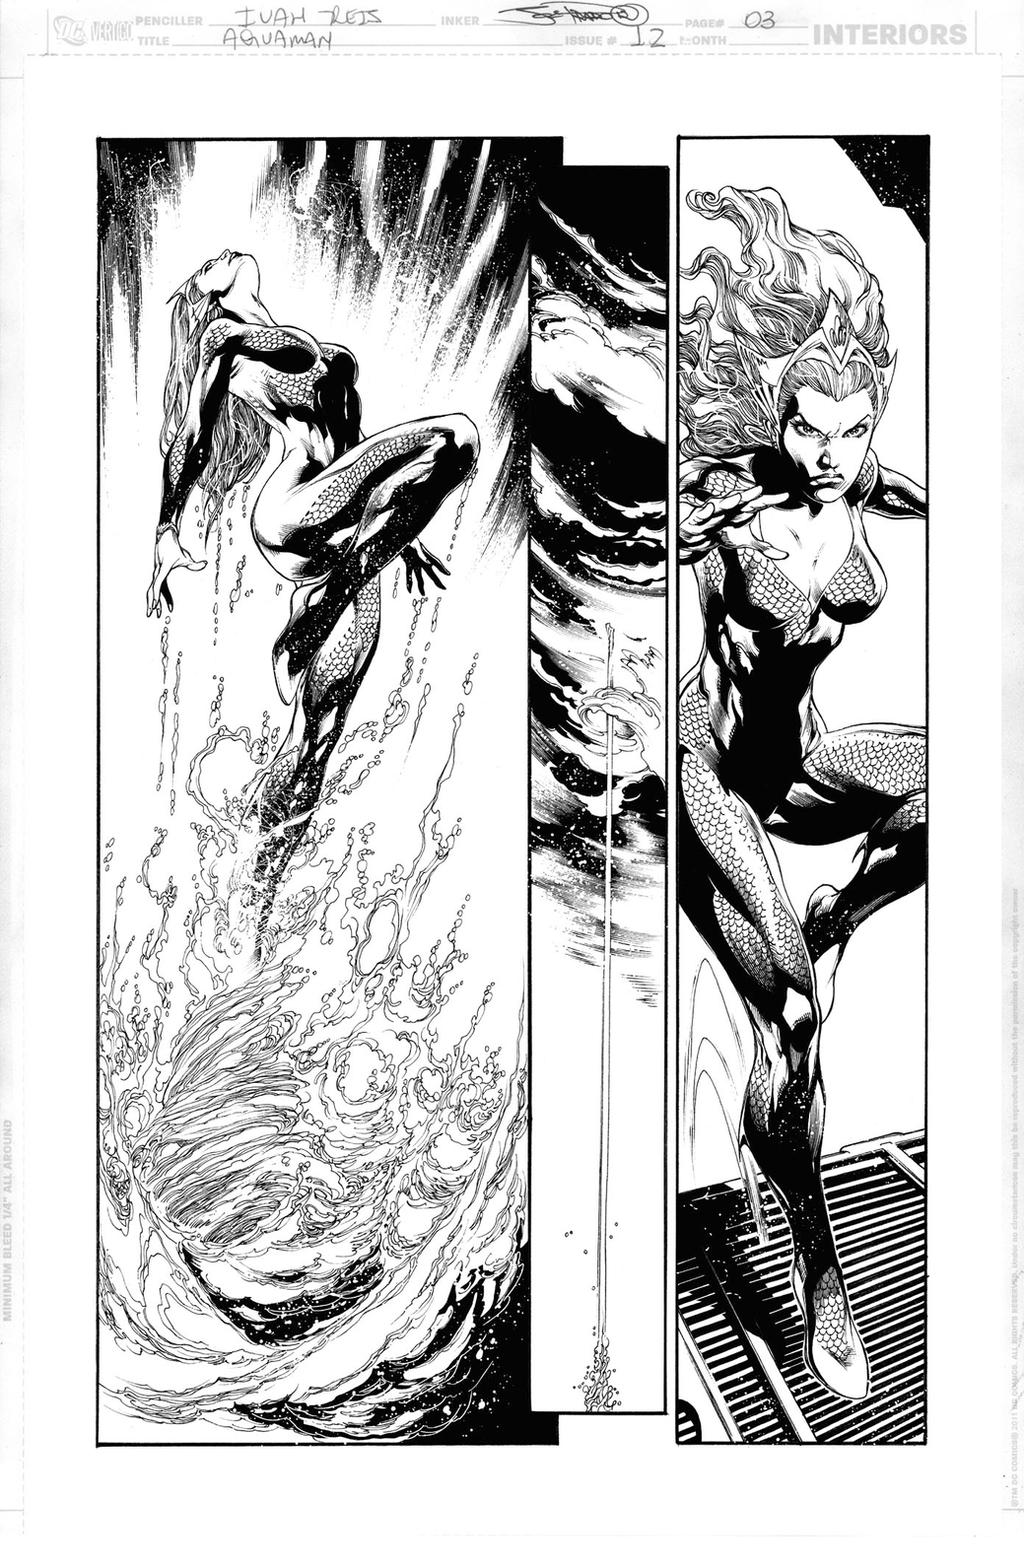 AQUAMAN Issue 12 Page 03 by JoePrado2010